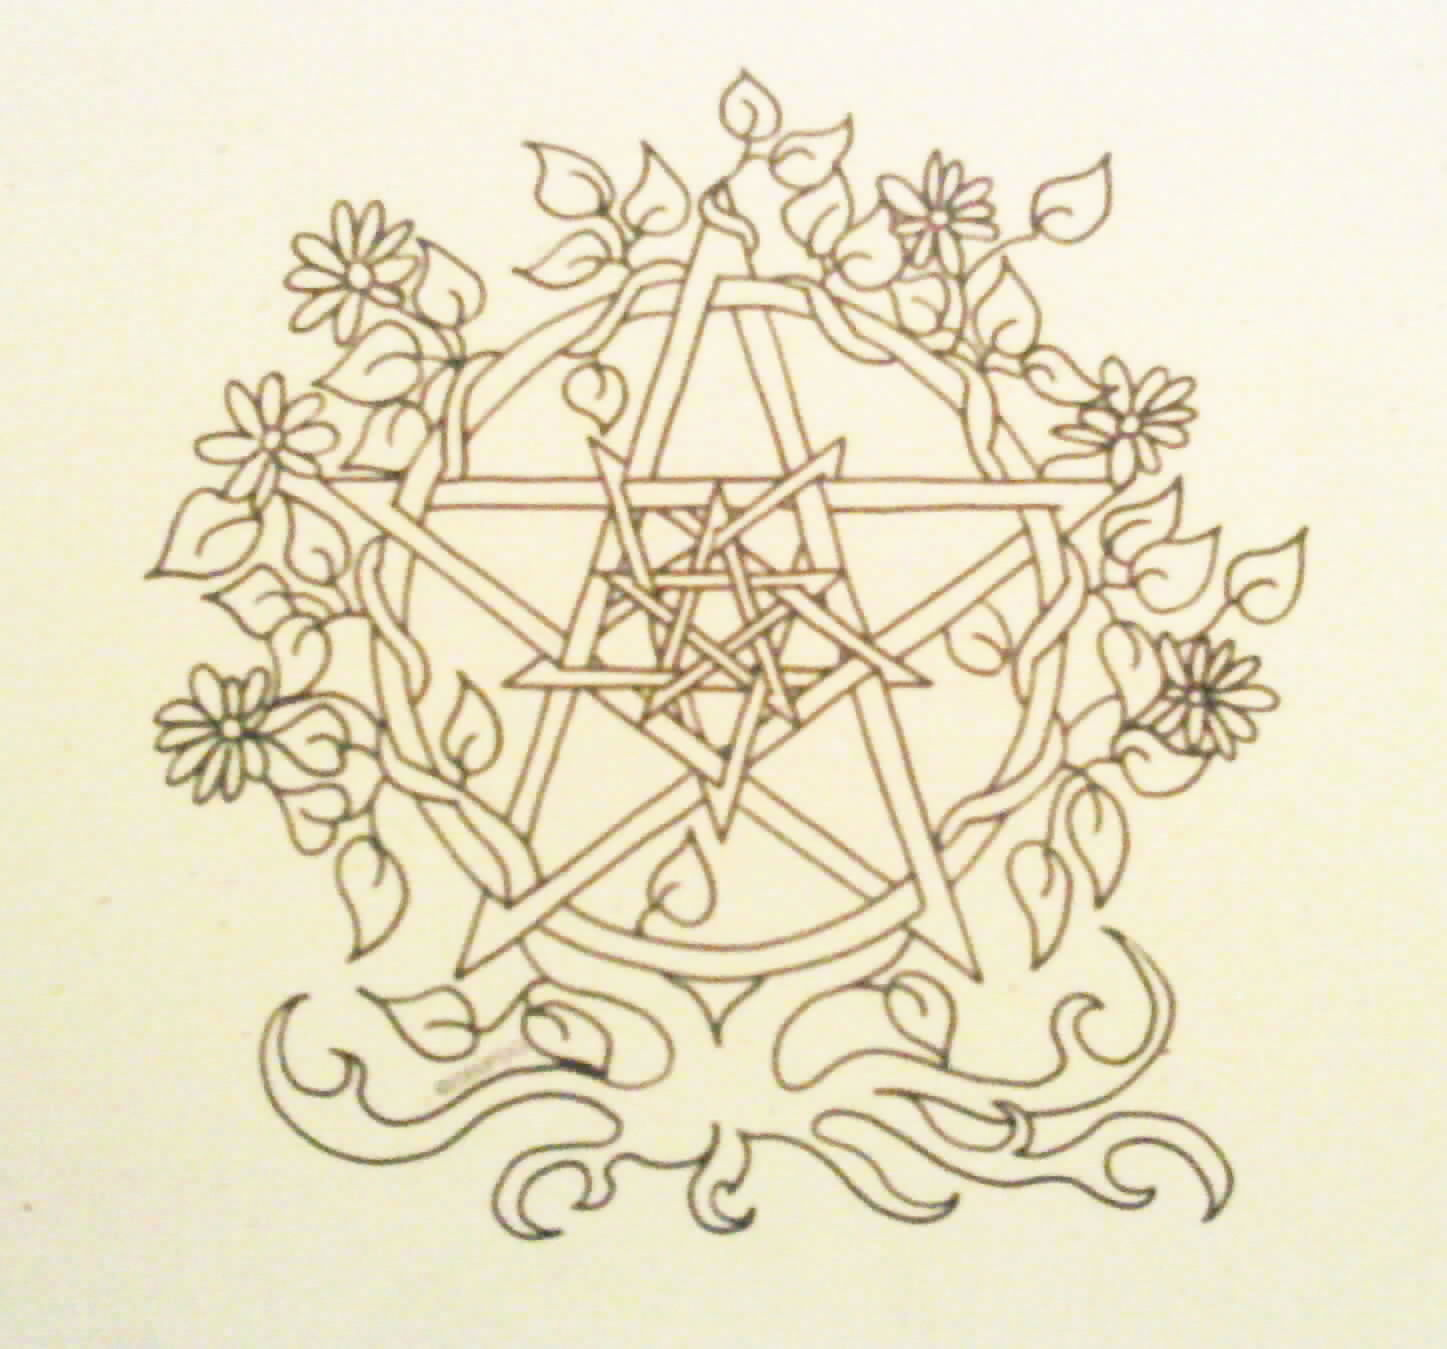 pagan yule coloring pages - photo #34